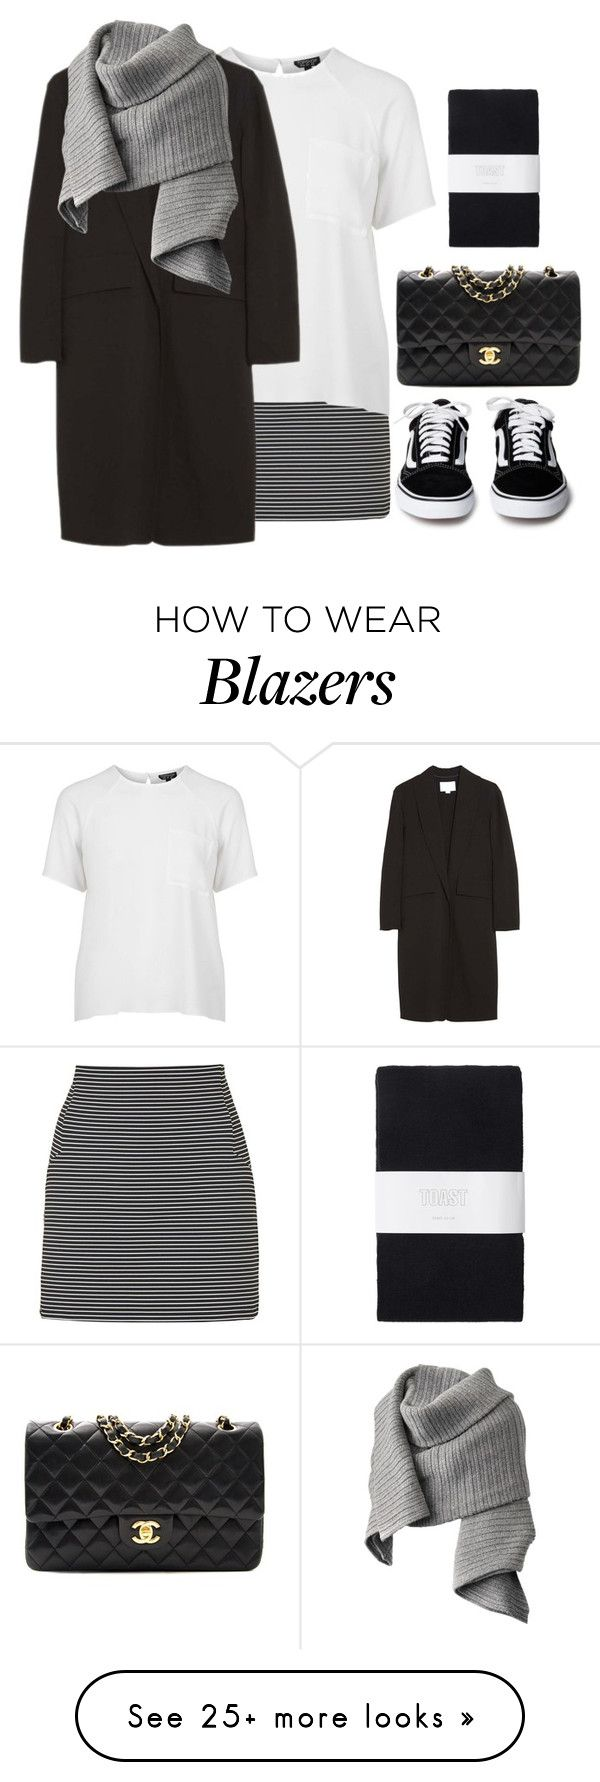 """""""Untitled #4012"""" by ericacavaco12 on Polyvore featuring Topshop, Alexander Wang, Acne Studios, Chanel and Toast"""